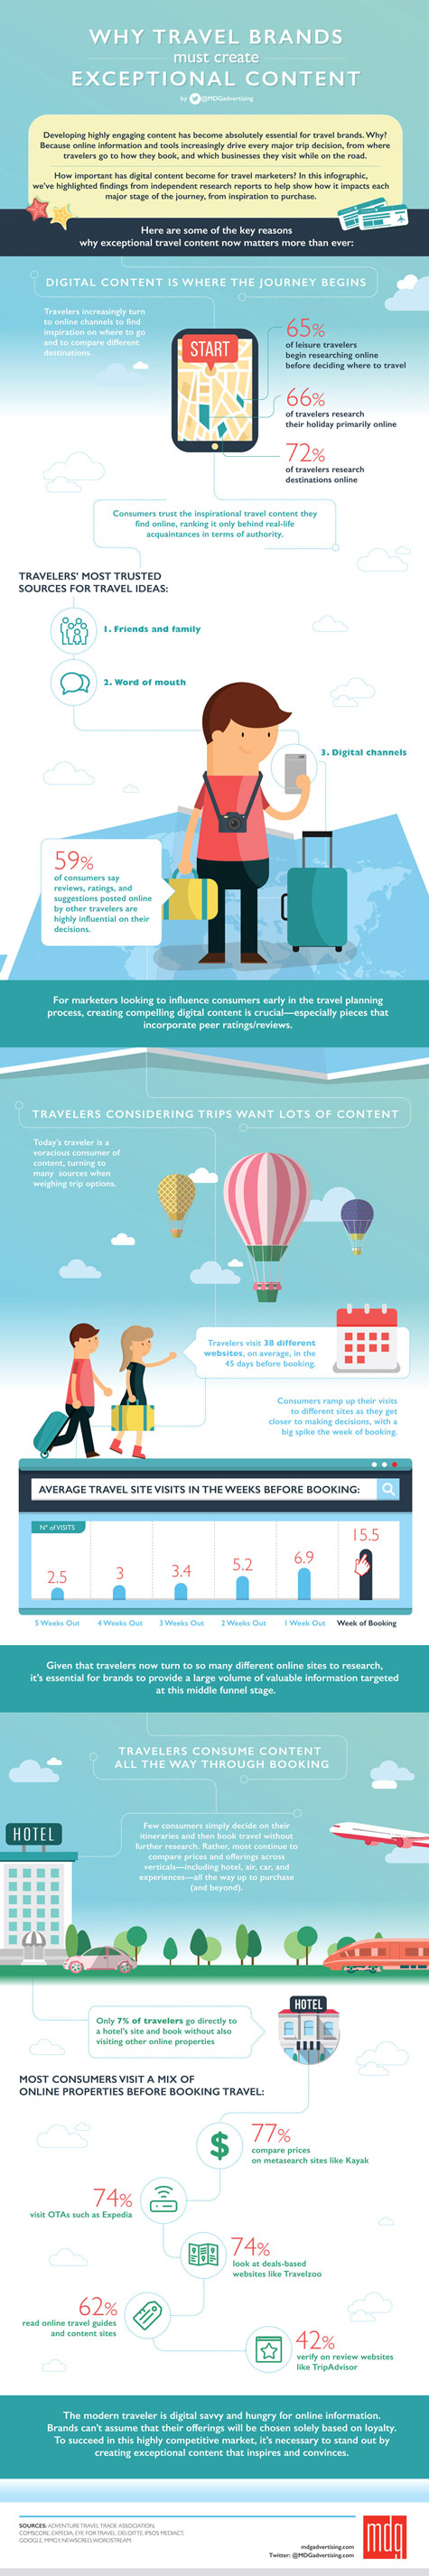 The 4 Keys to Creating Exceptional Travel Content in 2016 [Infographic]